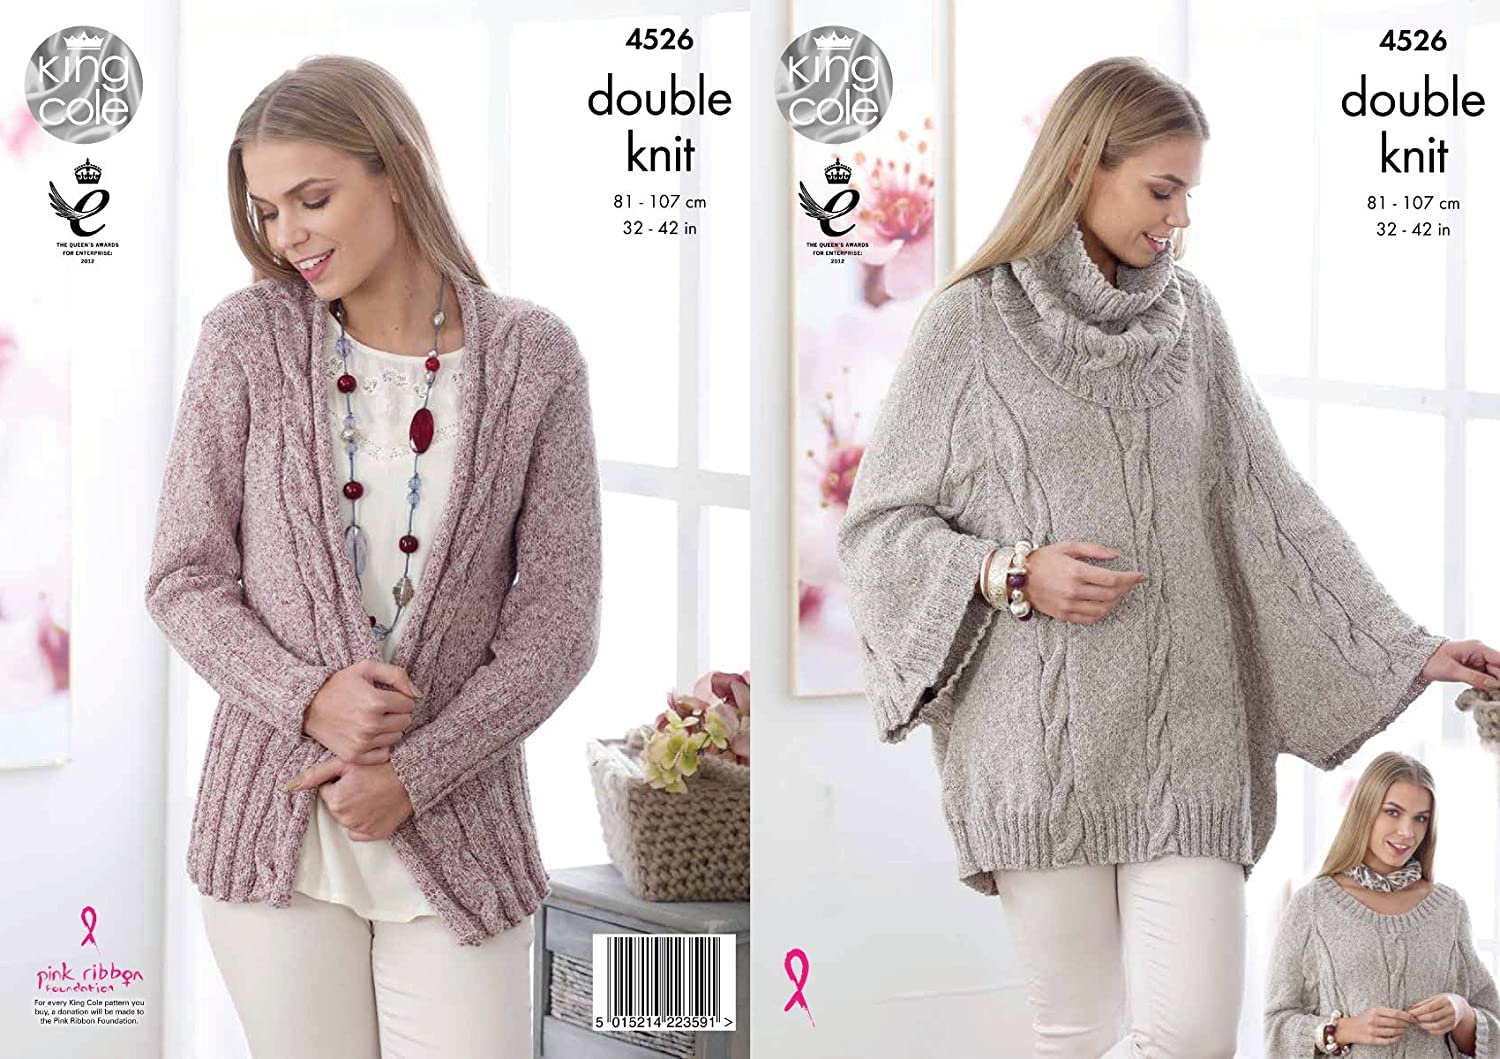 King Cole 4526 Knitting Pattern Ladies Cape Cowl and Cardigan in ...